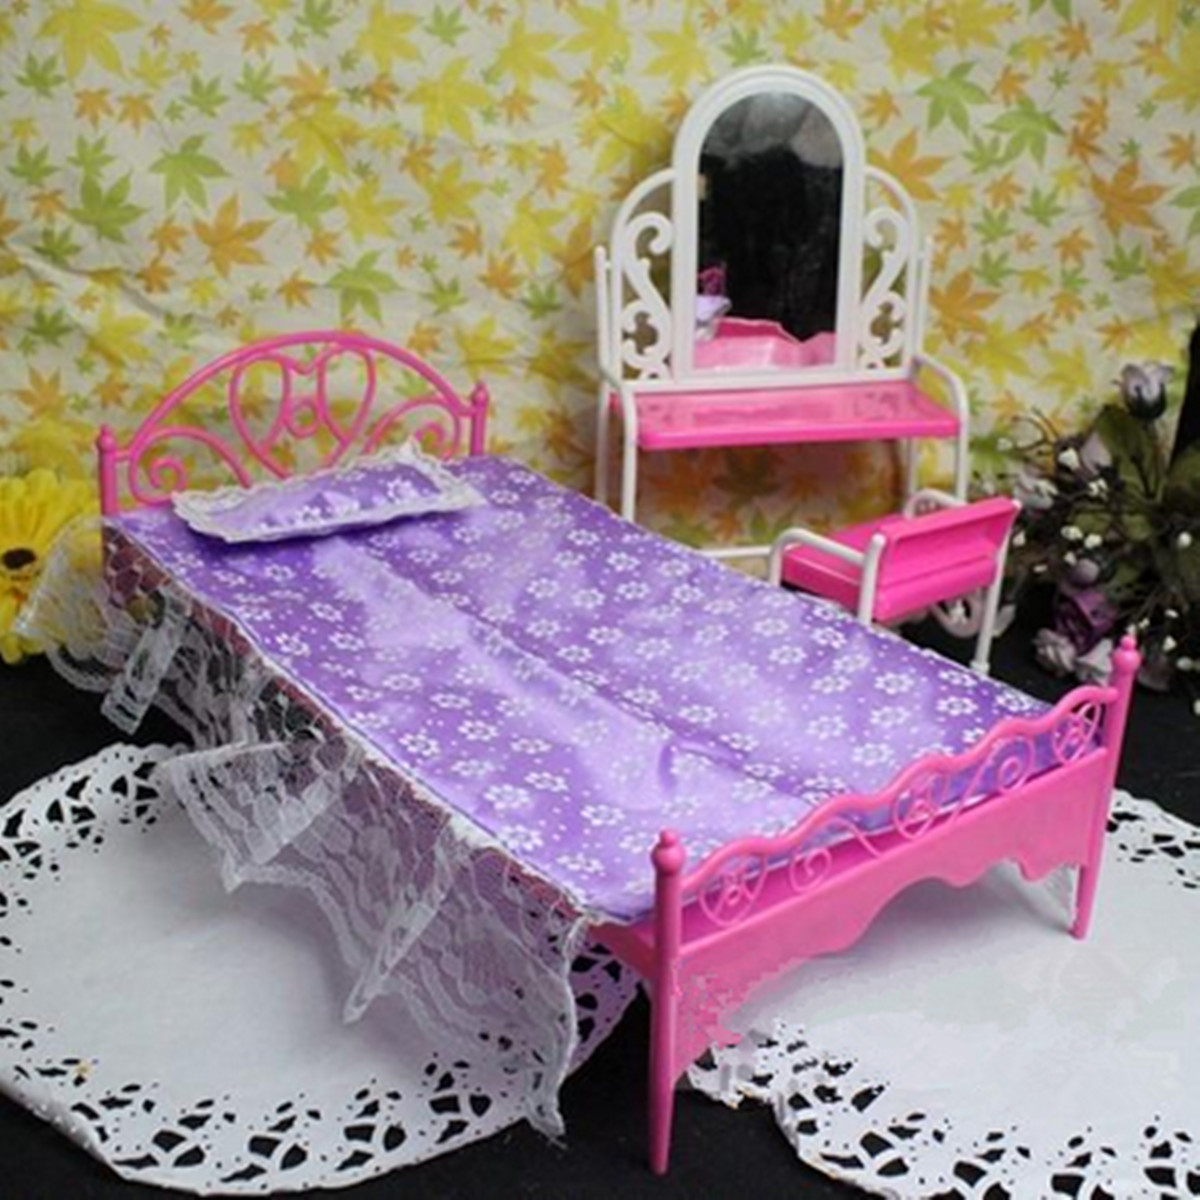 Plastic miniatures bedroom furniture single bed for barbie dolls dollhouse gift lazada malaysia Plastic bedroom furniture